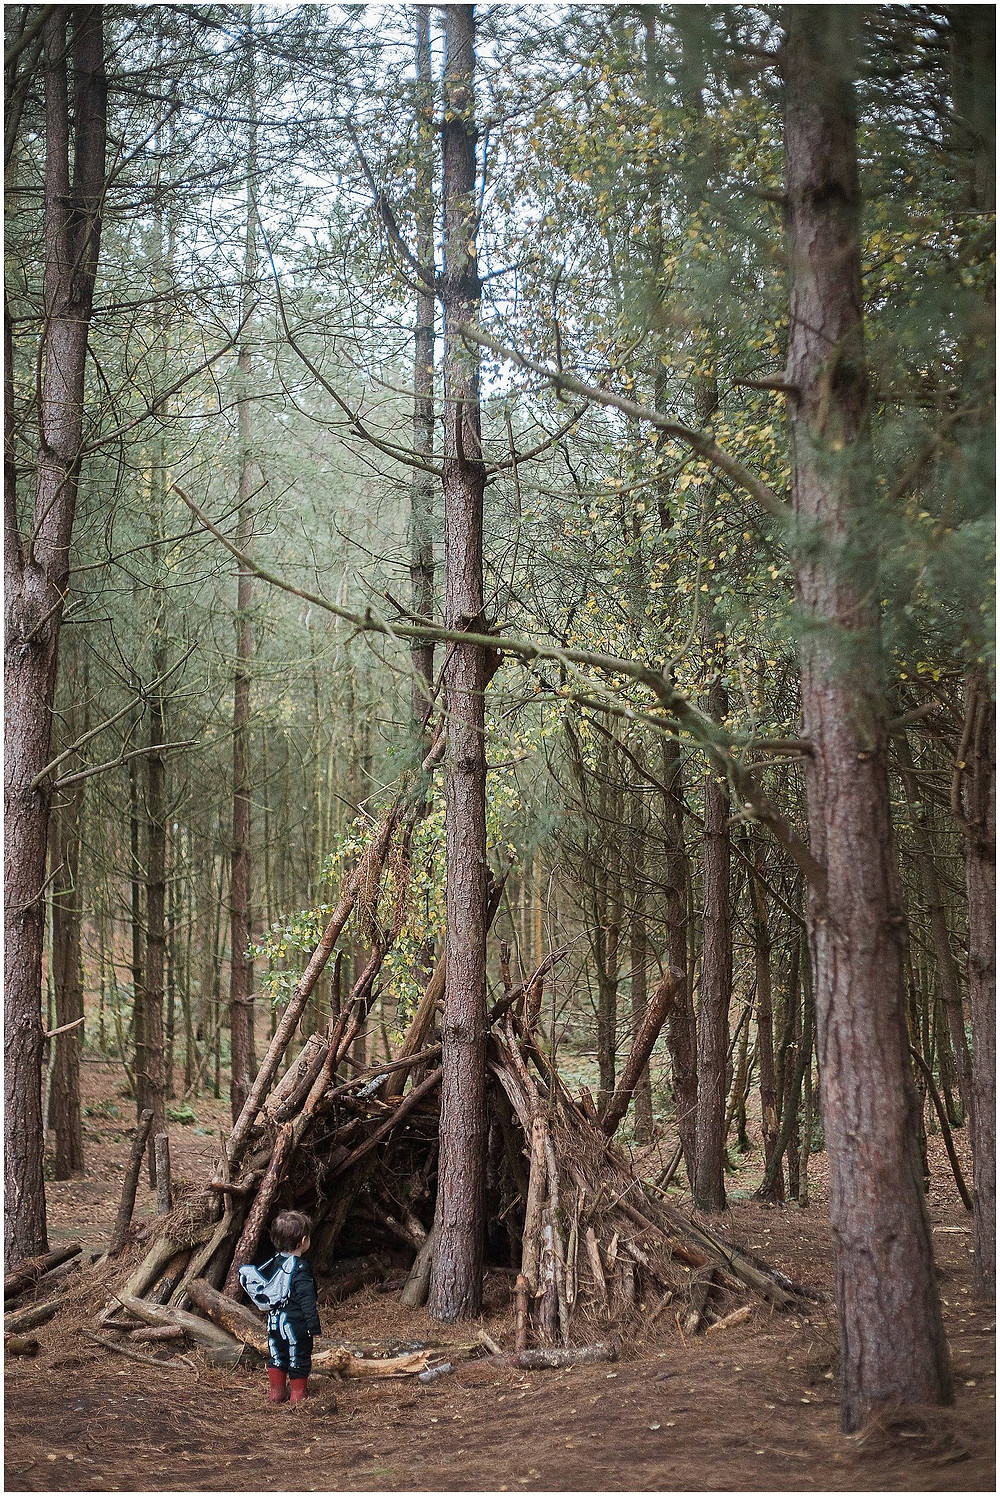 dens in the woods